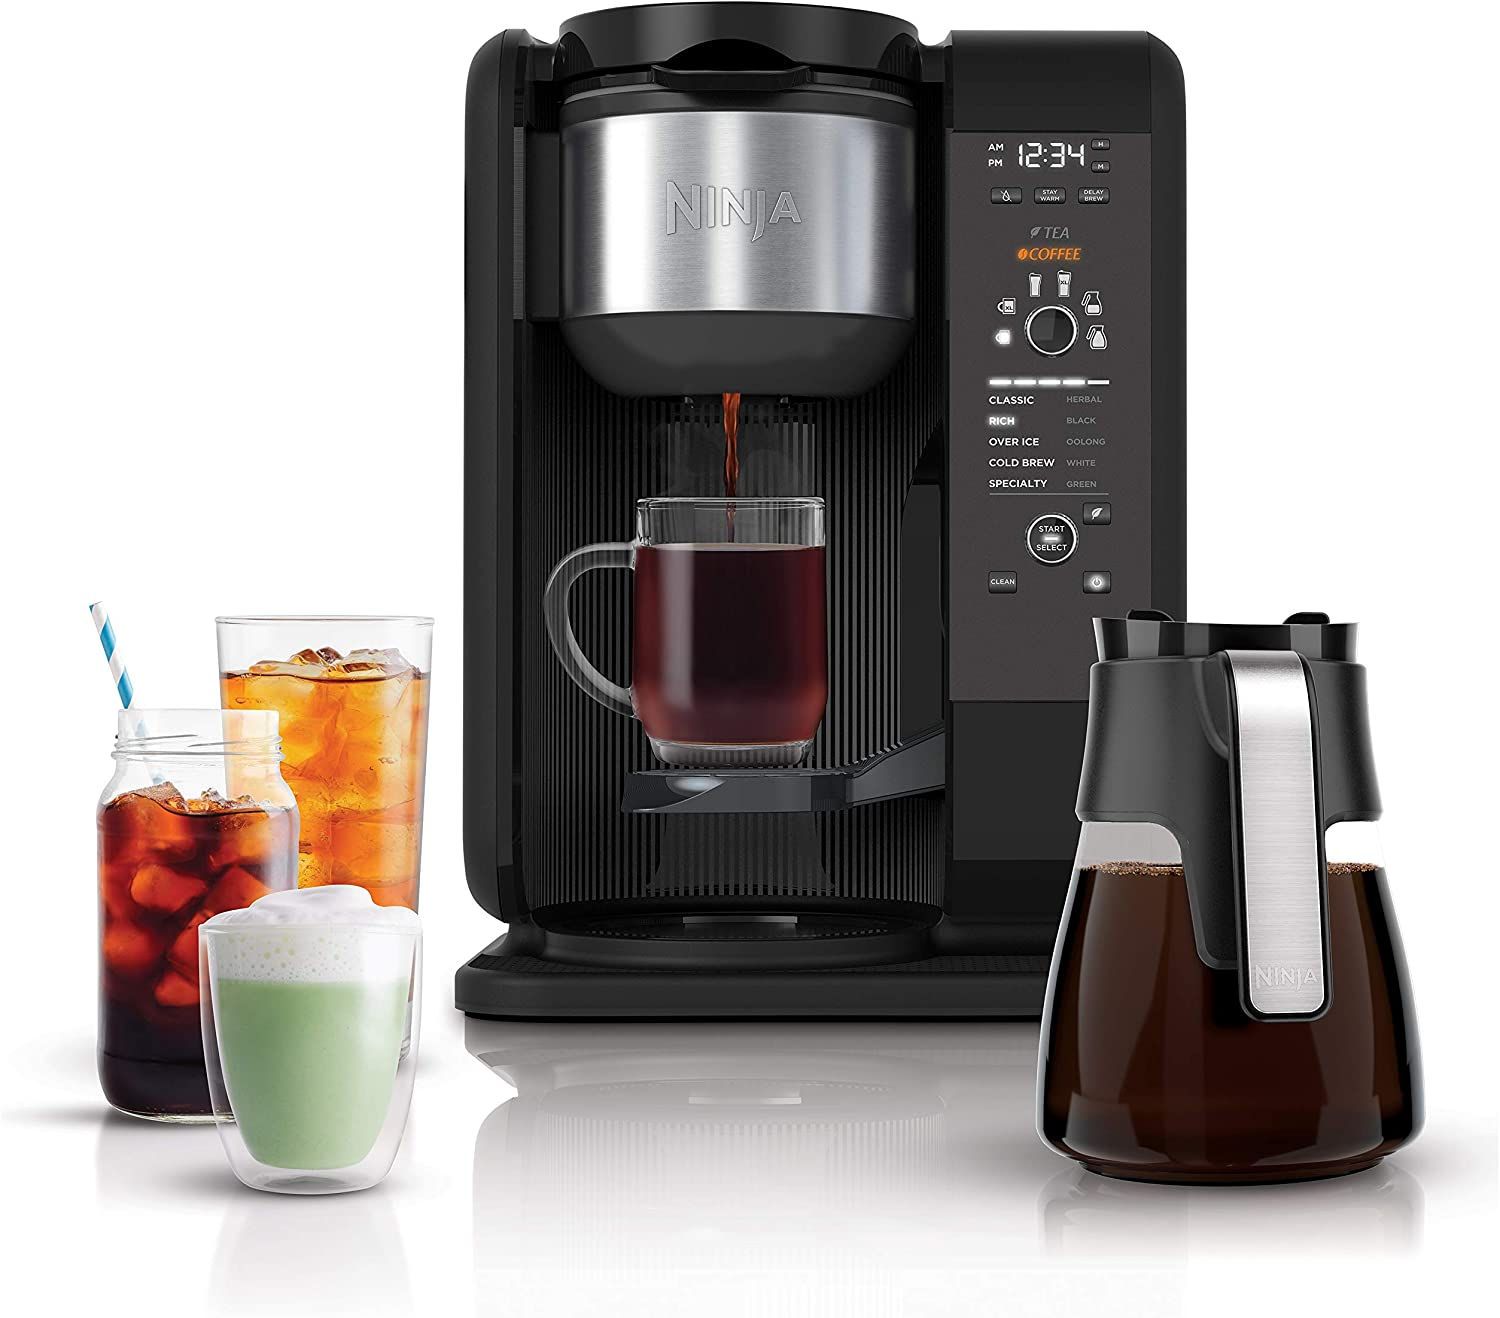 Ninja Hot and Cold Brewed System